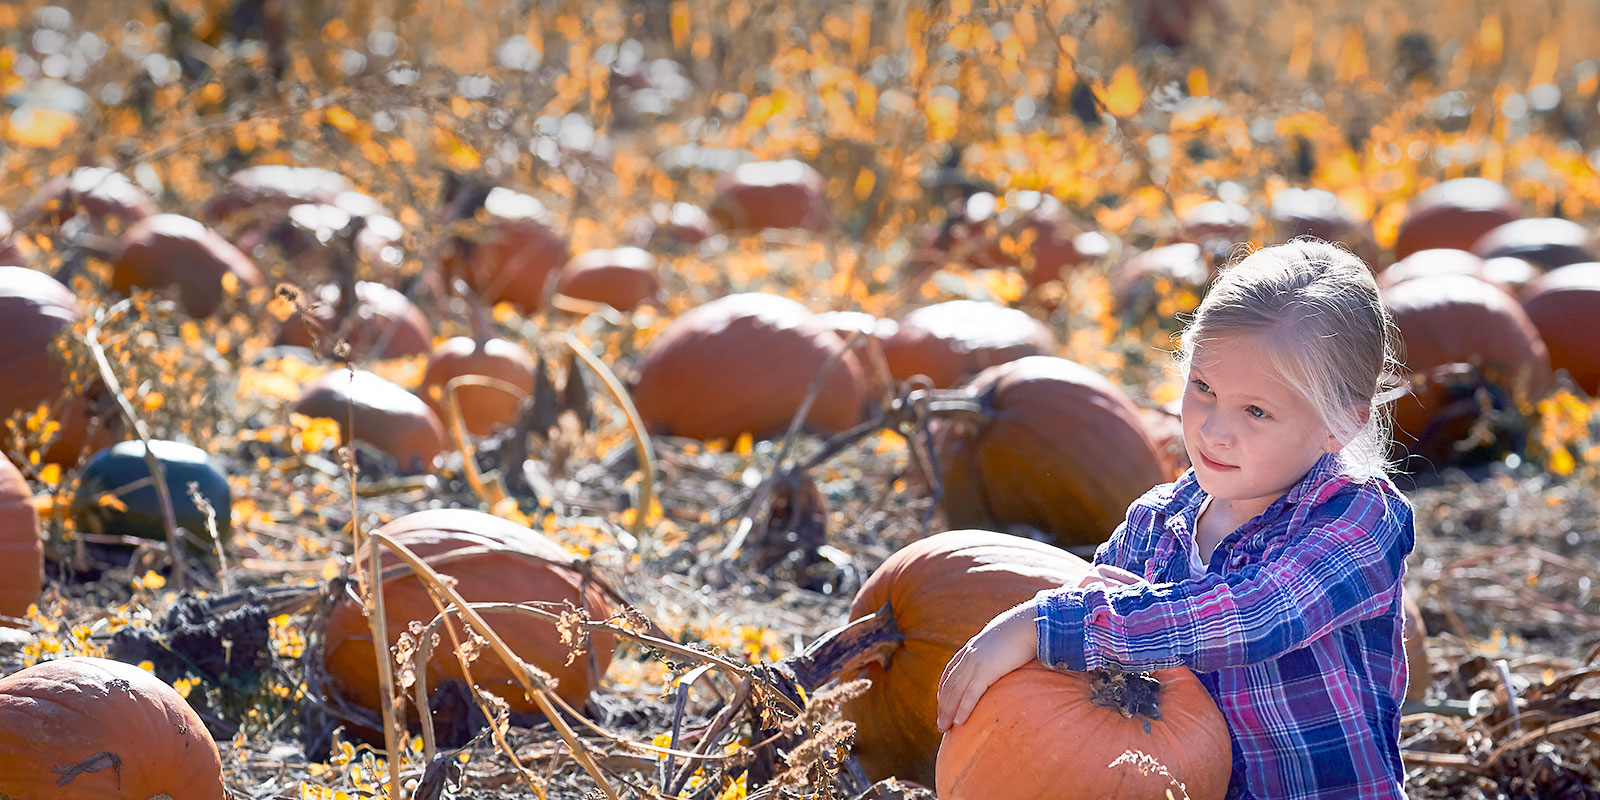 Fulford Student at Bond's Pumpkin Patch  ©johncameron.ca